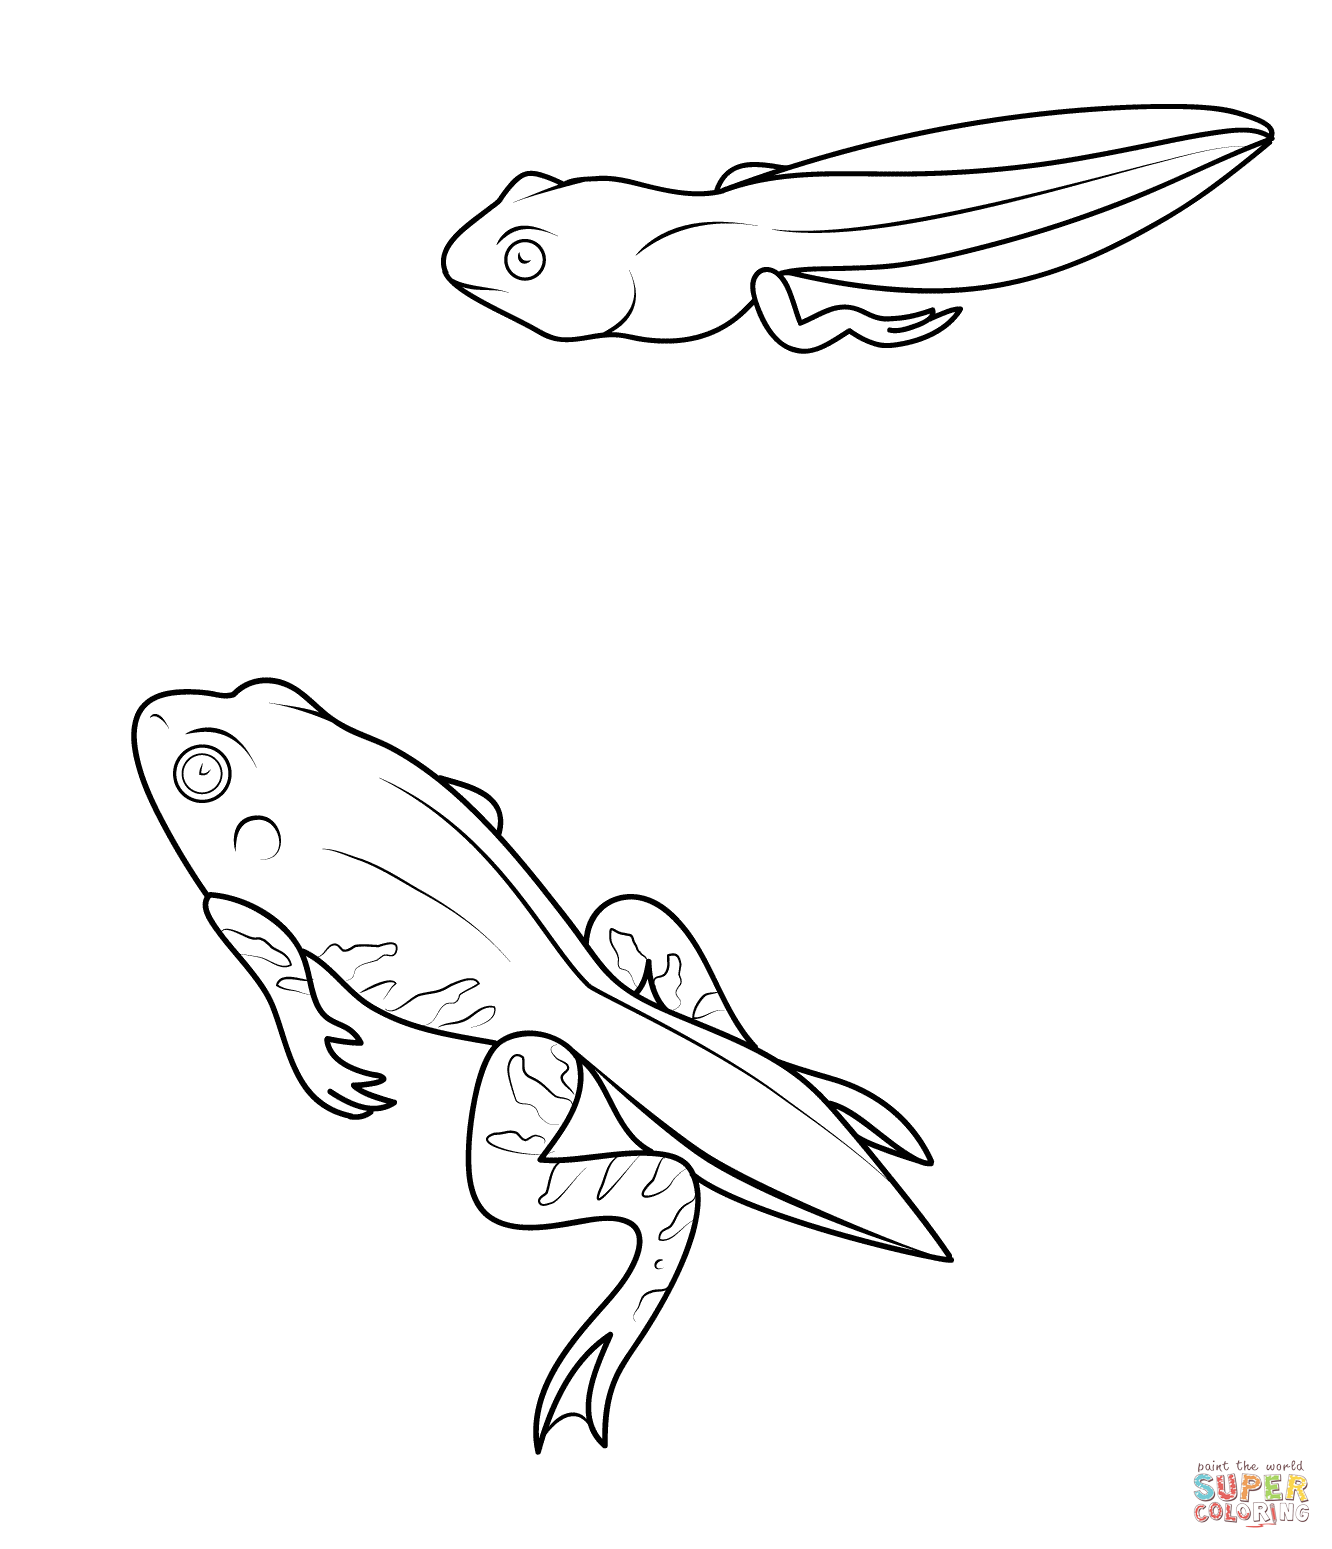 Tadpole Coloring Pages Coloring Pages Free Printable Coloring Pages Frog Art